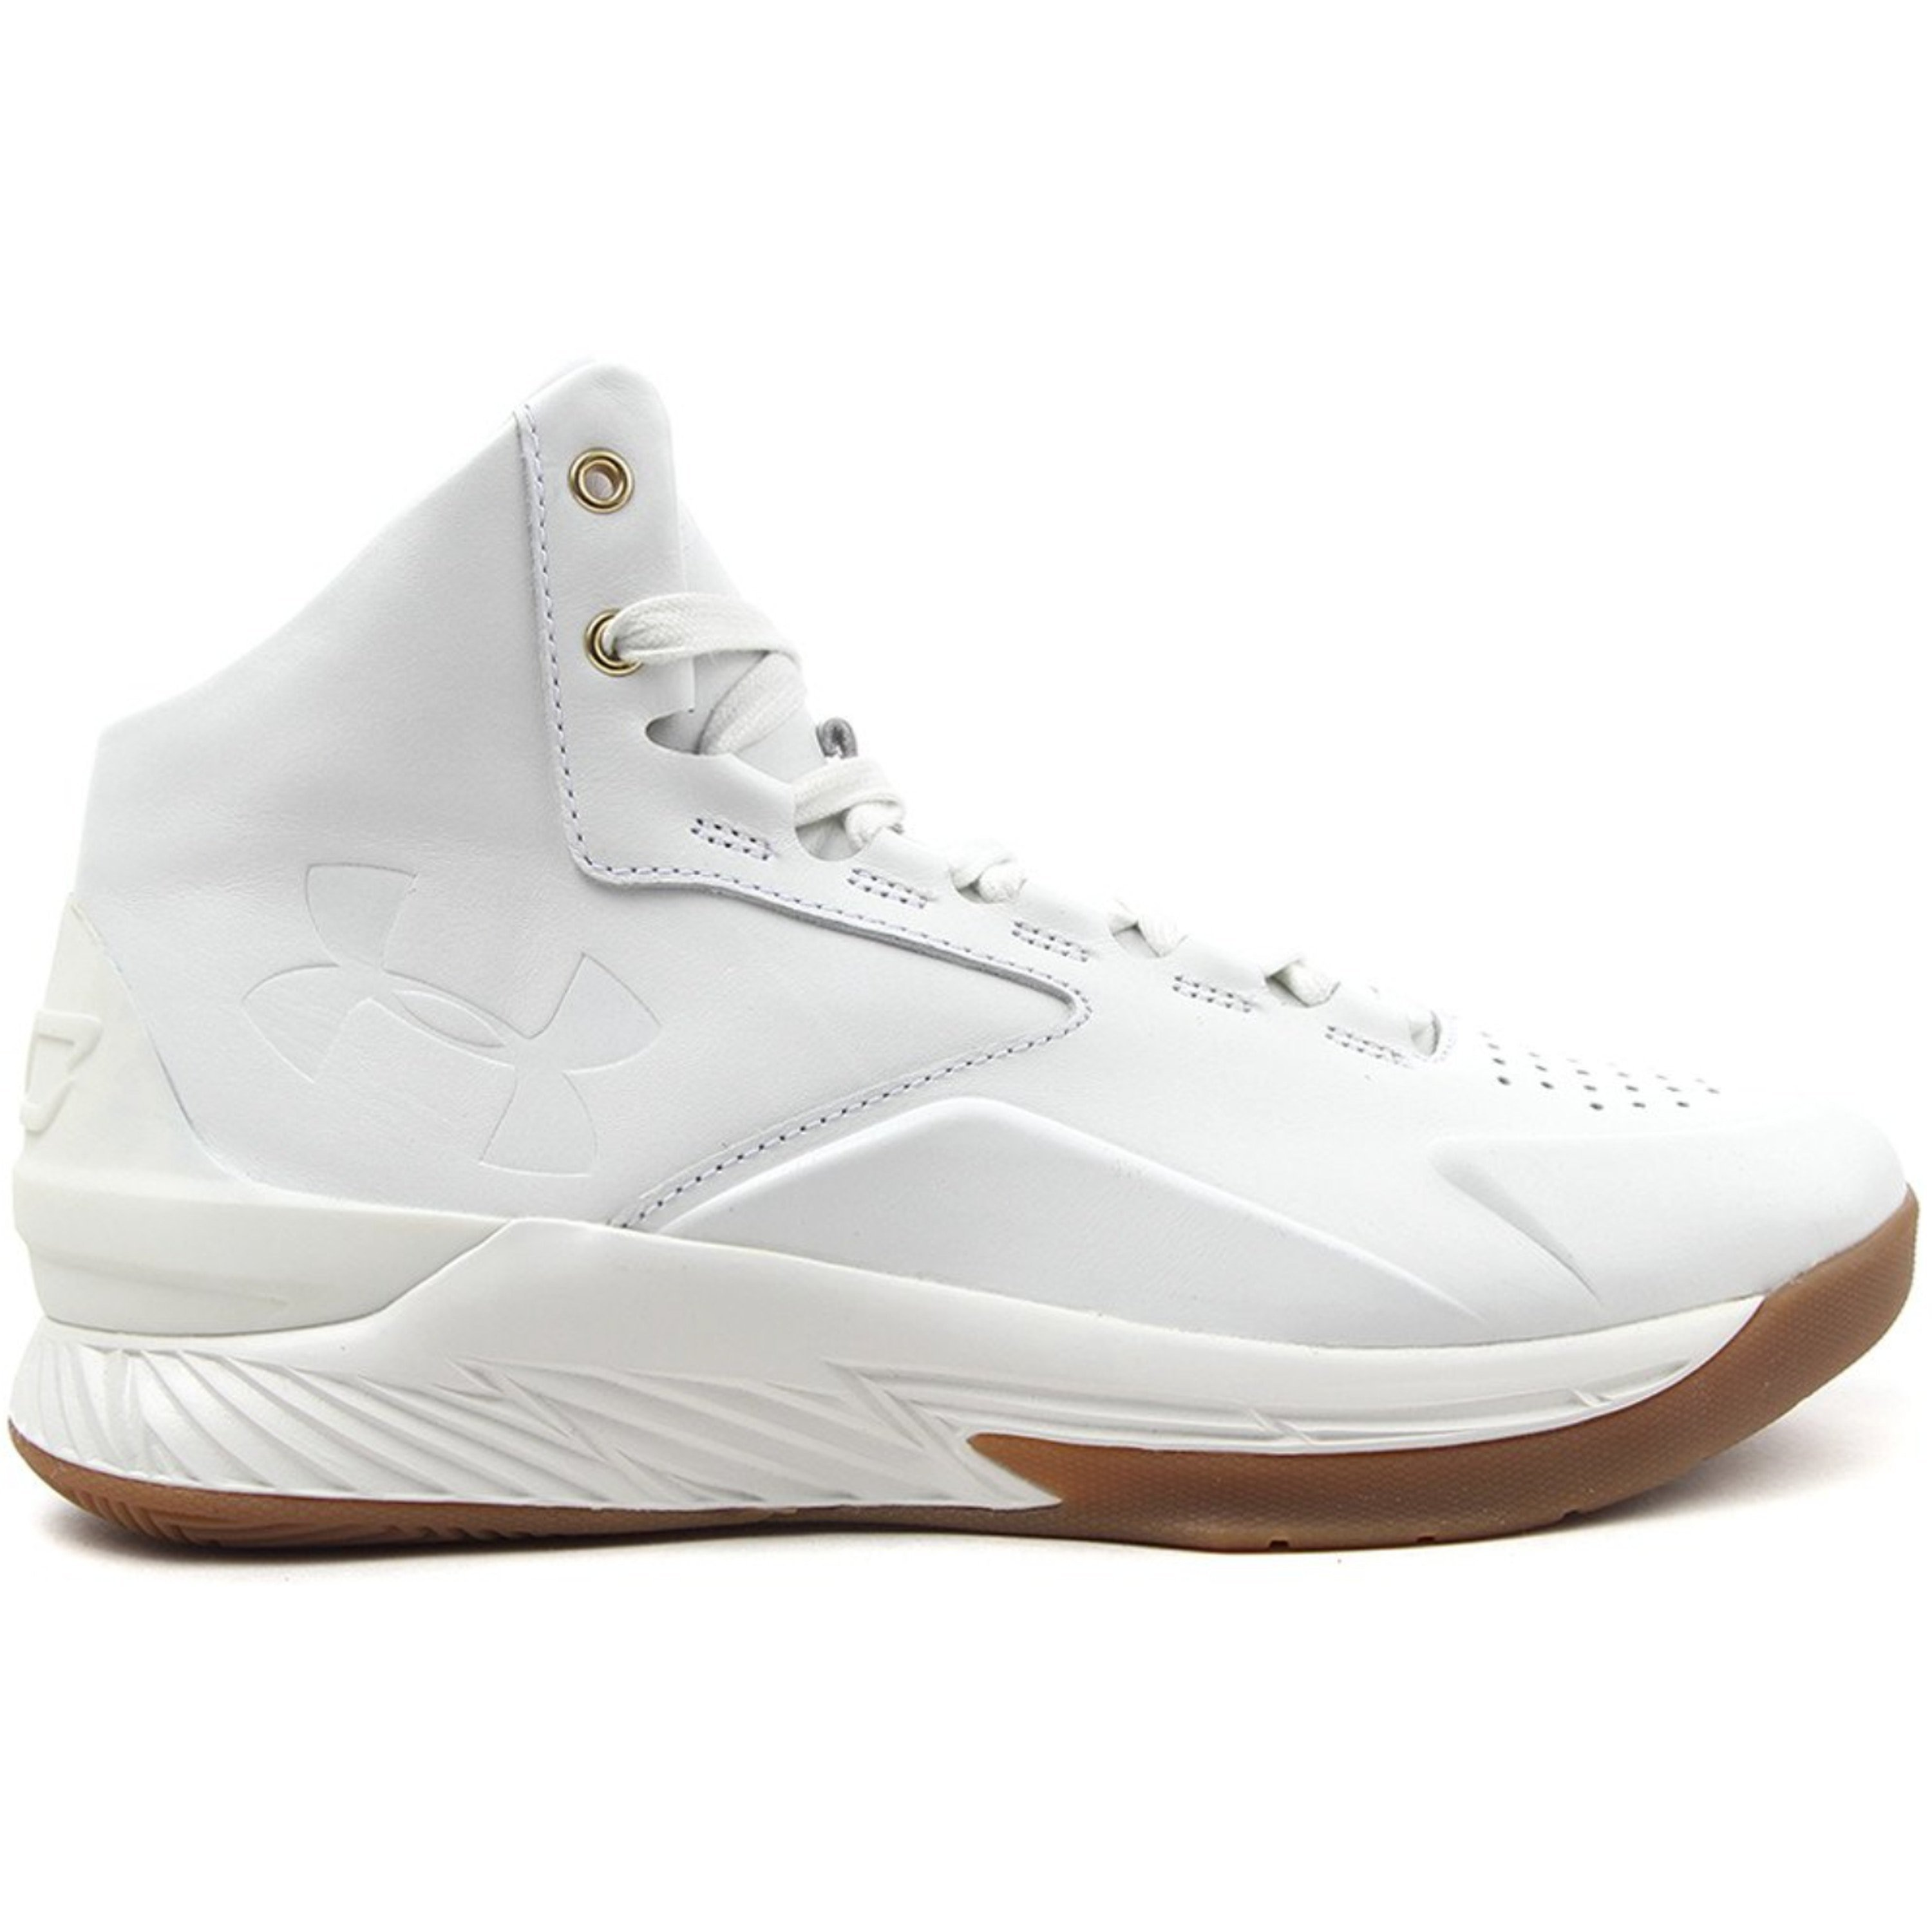 Under Armour UA Curry 1 Lux White Gum (1298700-100)